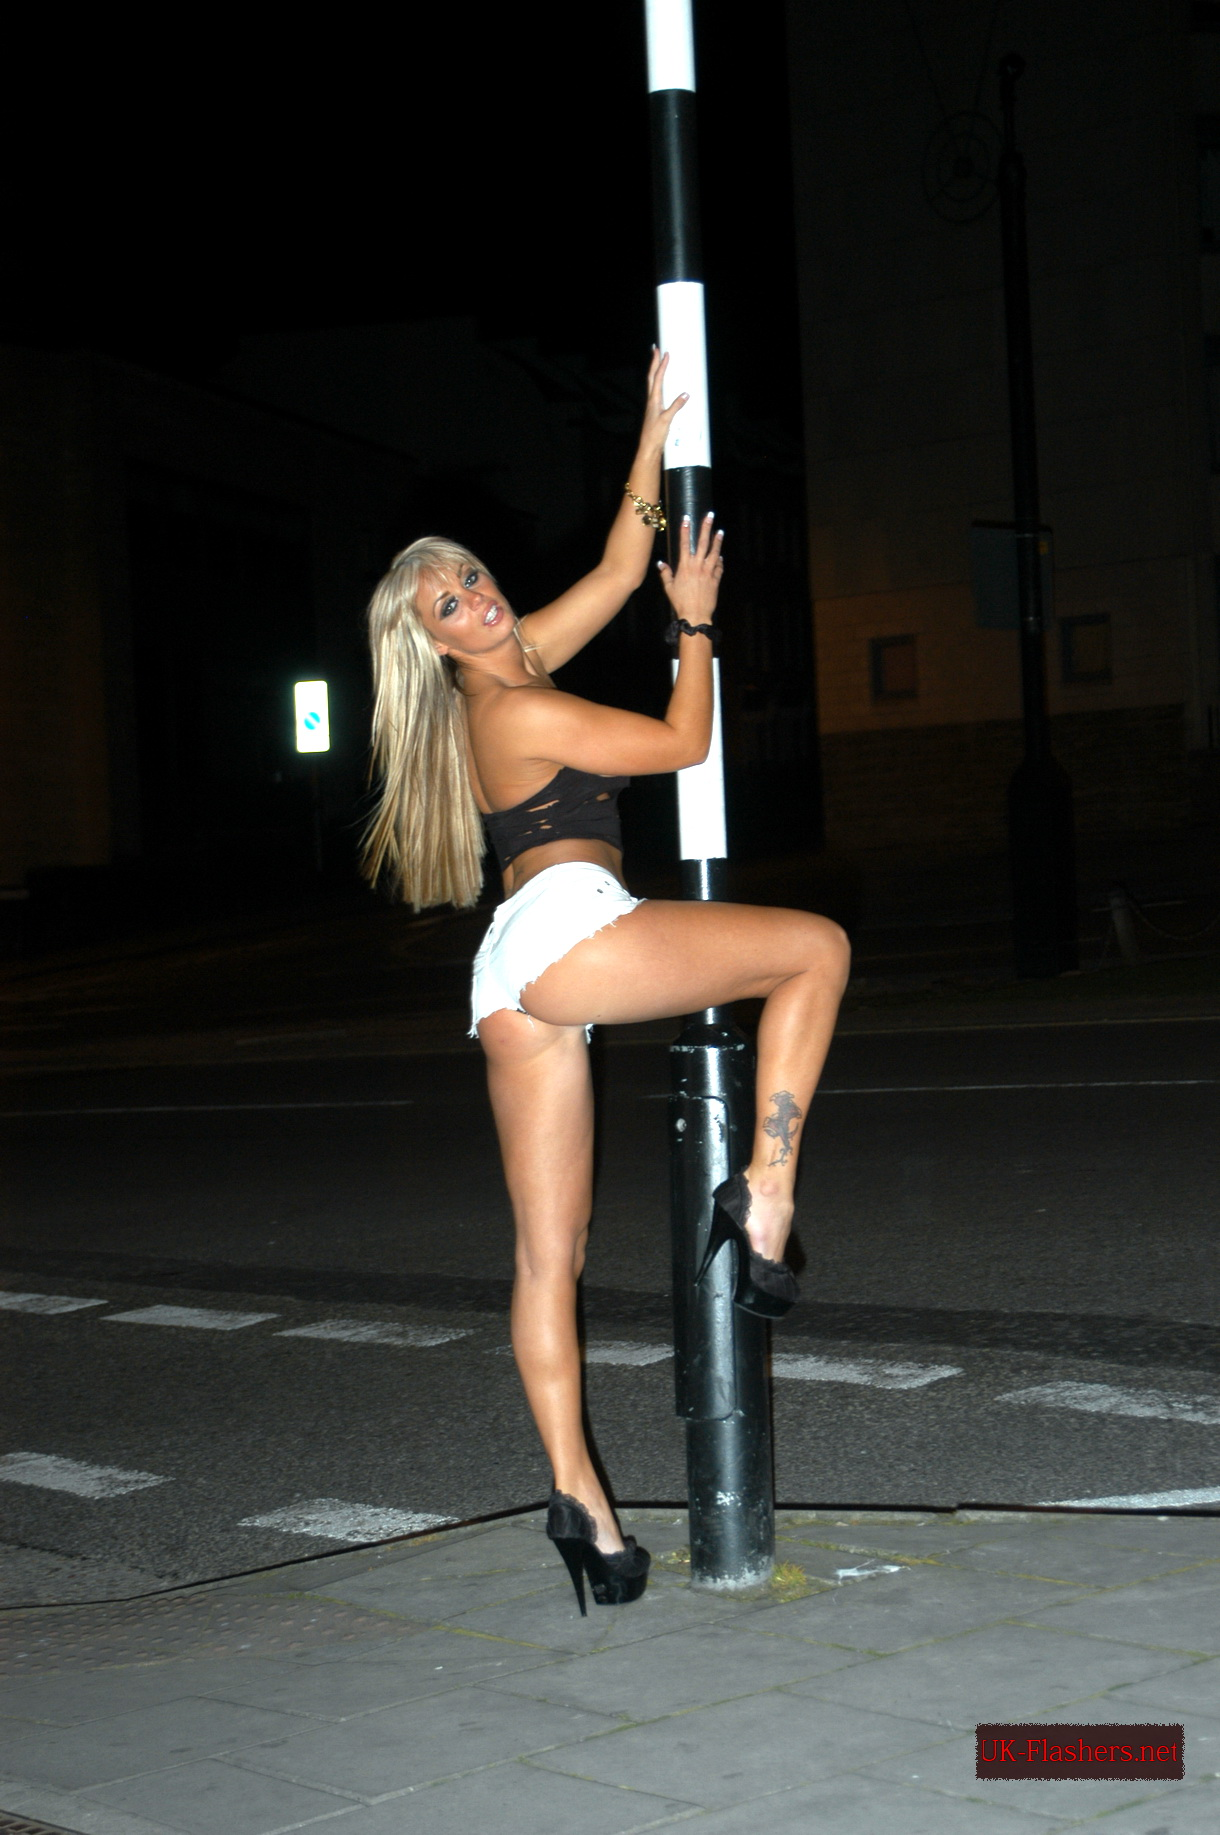 See The Stunning Girls Causing Flashing Outrage On Streets Of